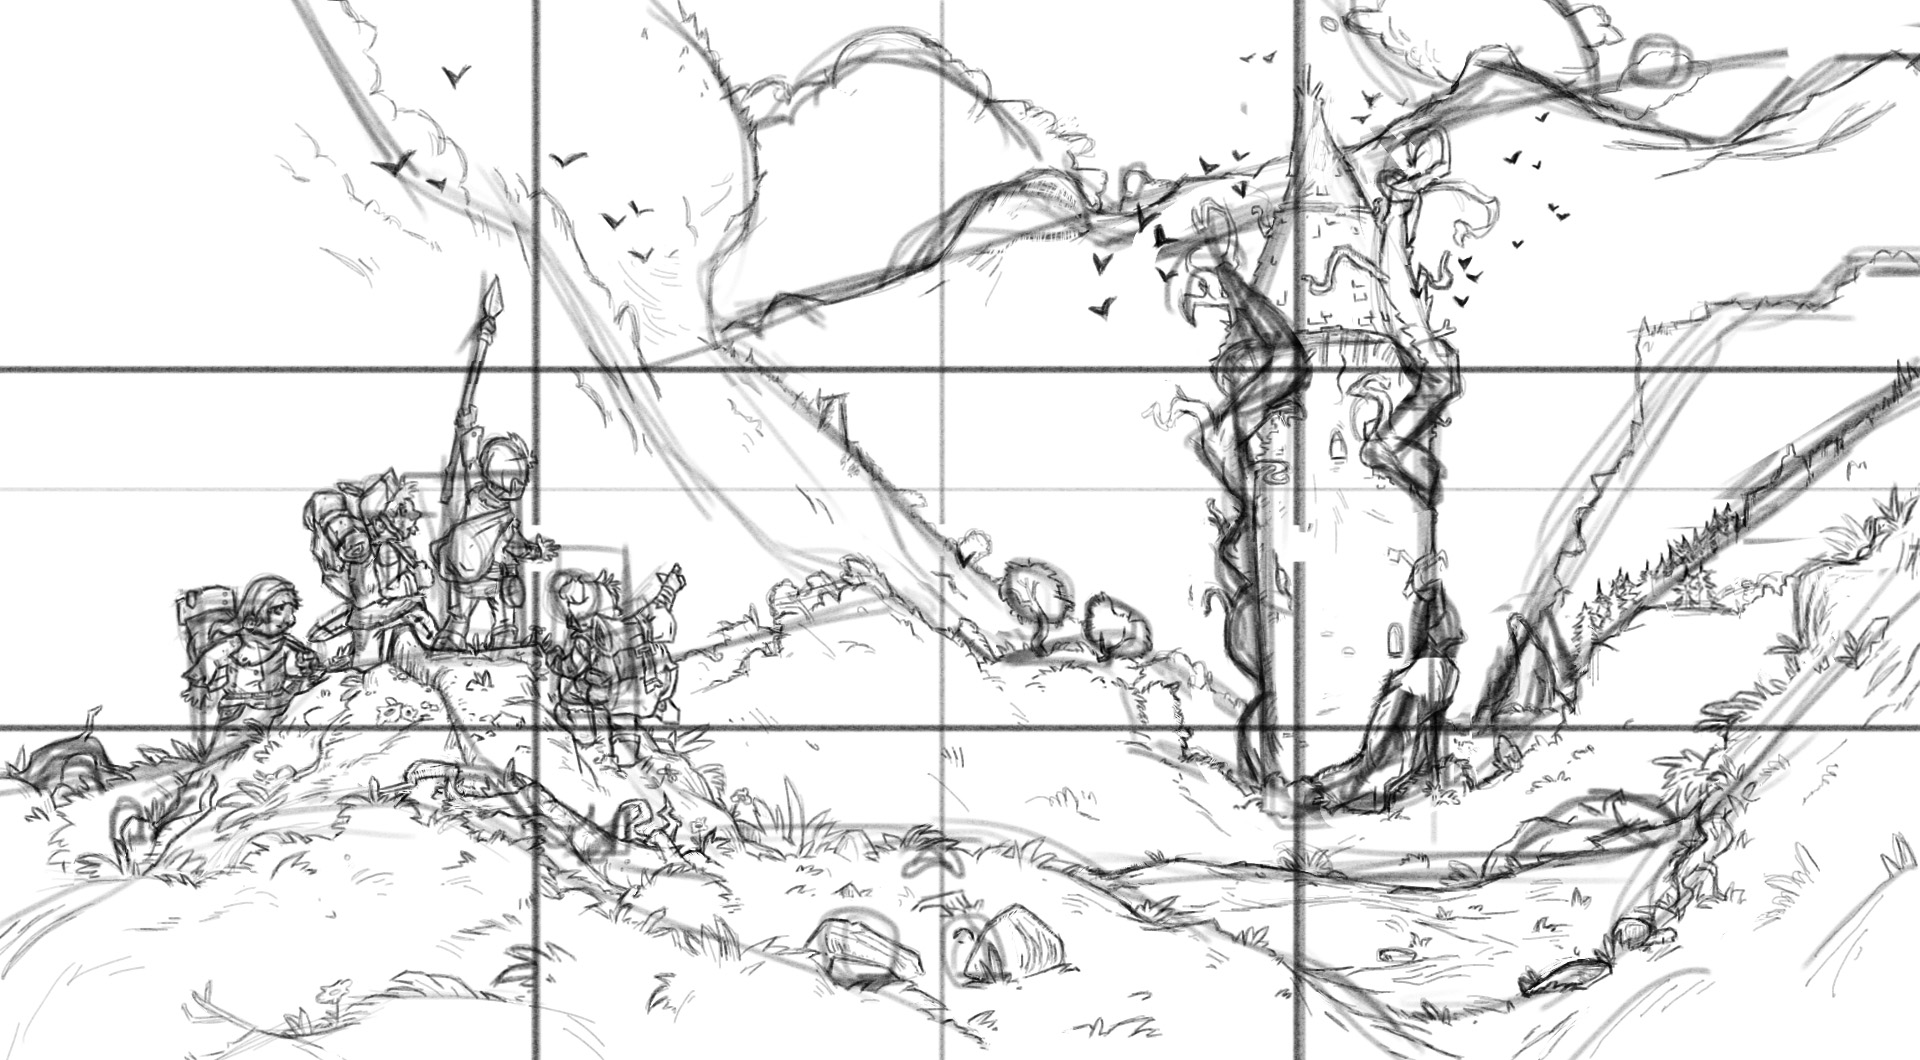 MASTER COPY SKETCH DONE (6.4 by 3.53).jpg